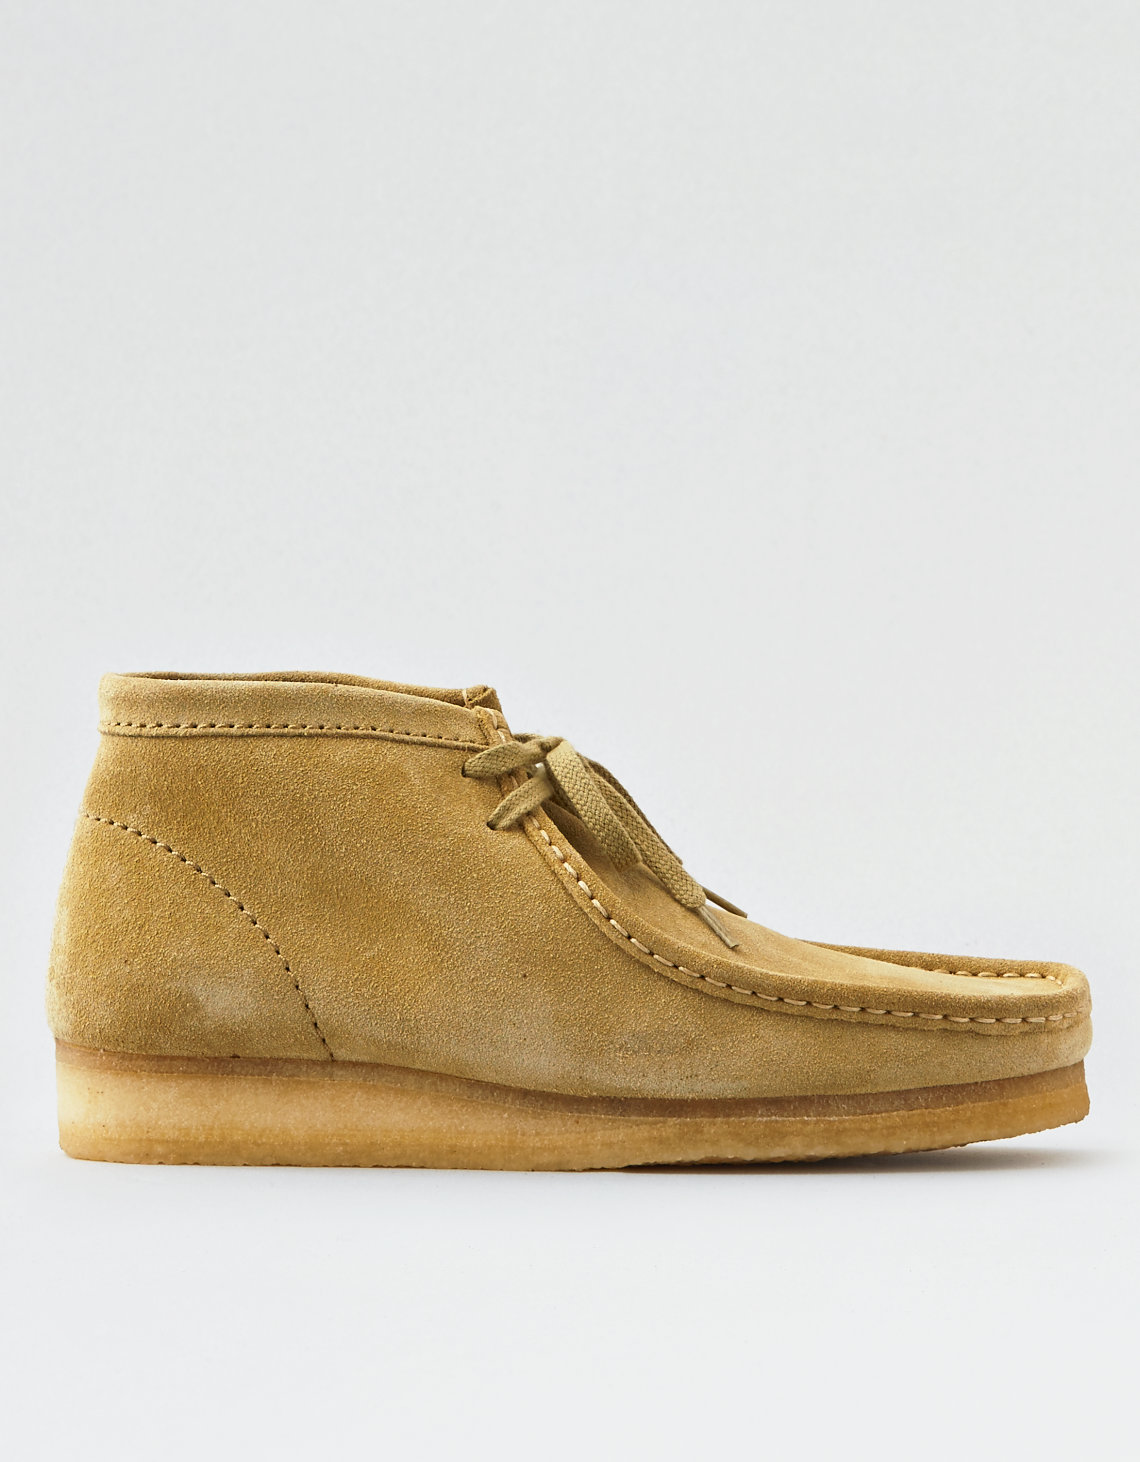 c9c5ac7d3ed7 Clarks Wallabee Boot